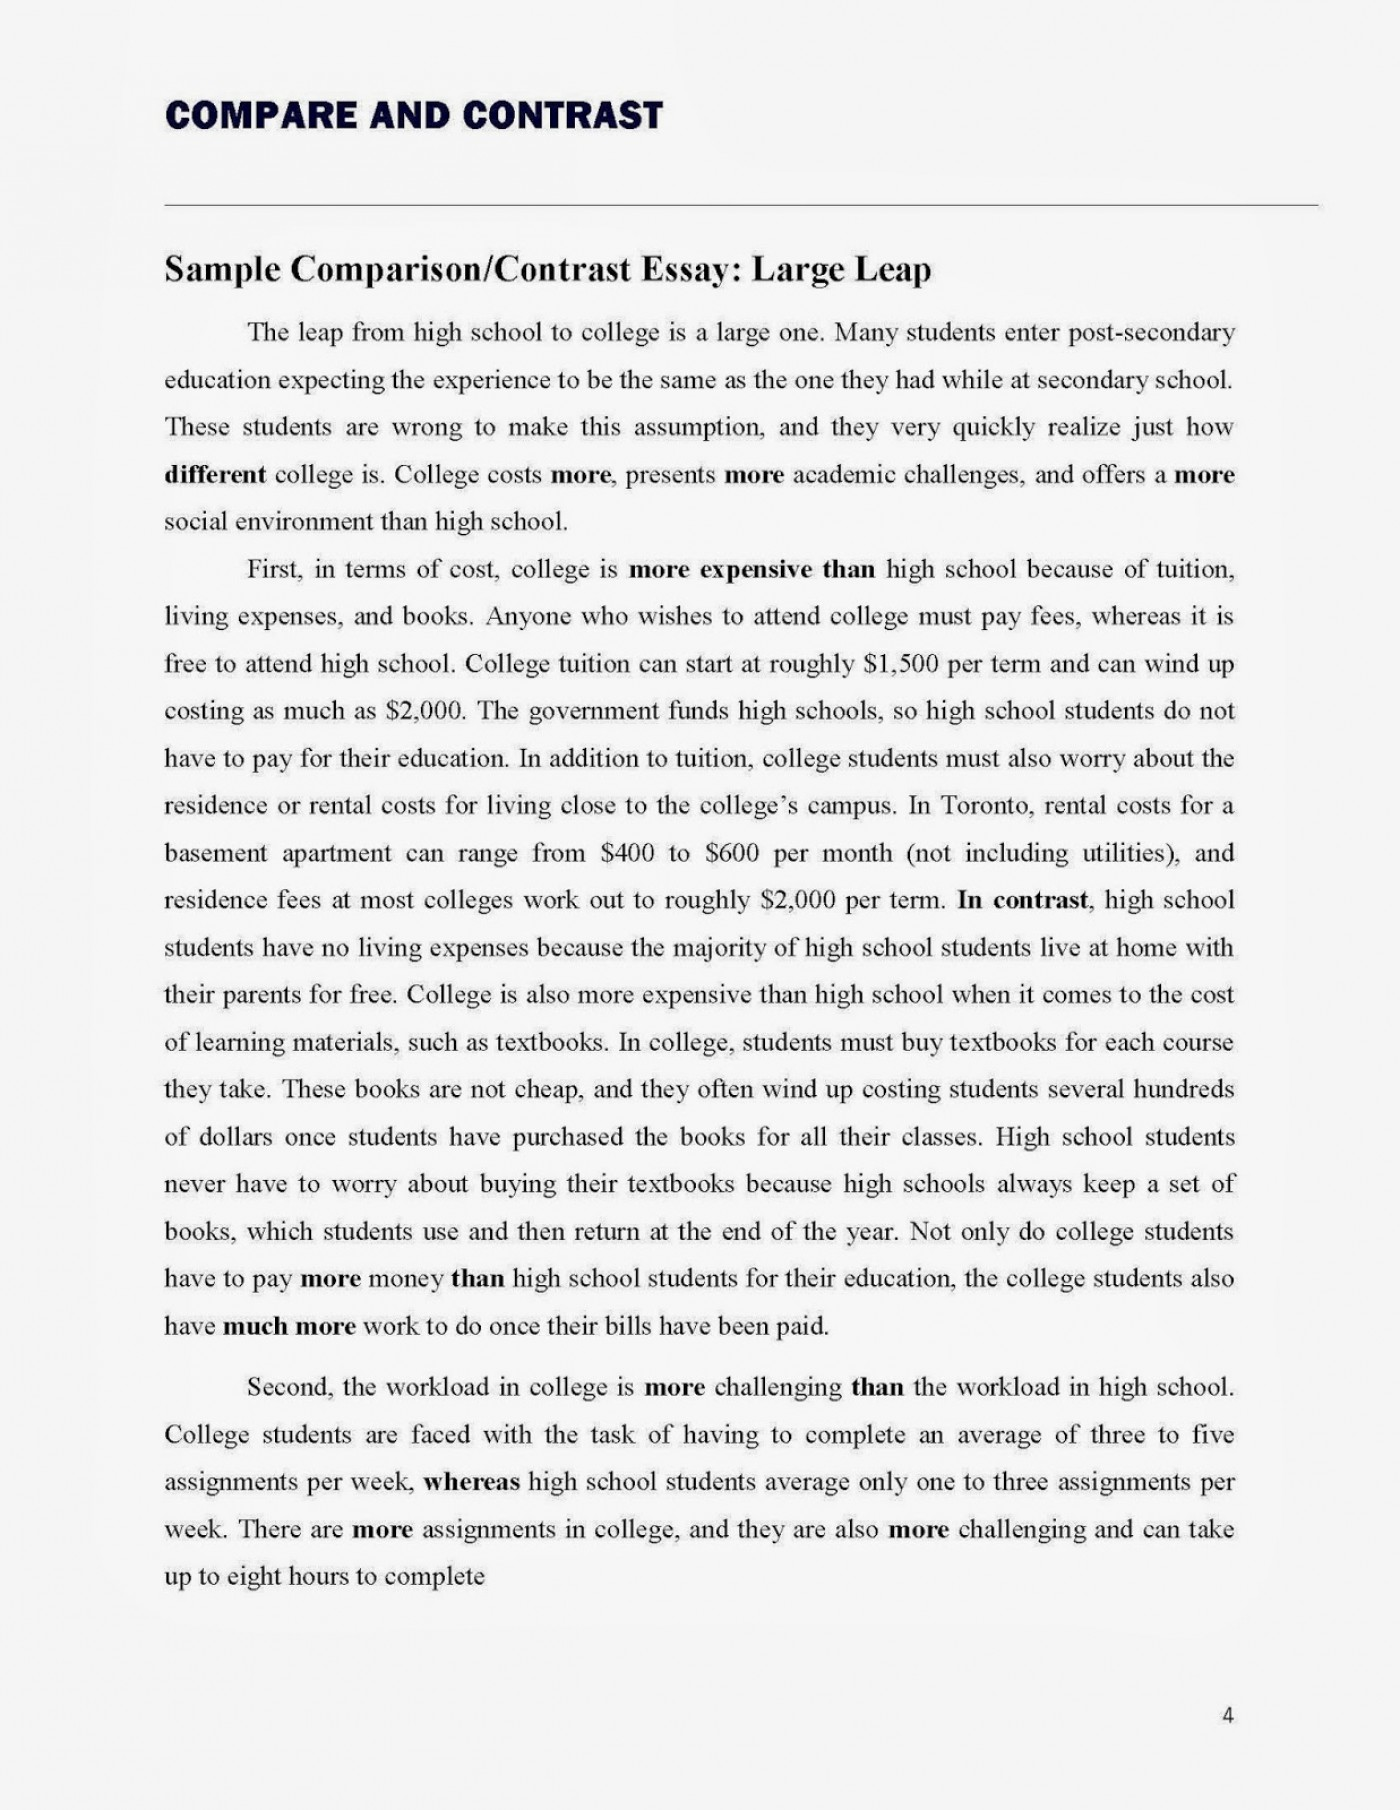 011 Compare And Contrast Essay Compareandcontrastessay Page 4h125 Frightening Introduction Paragraph Topics About Love Outline Example 1400